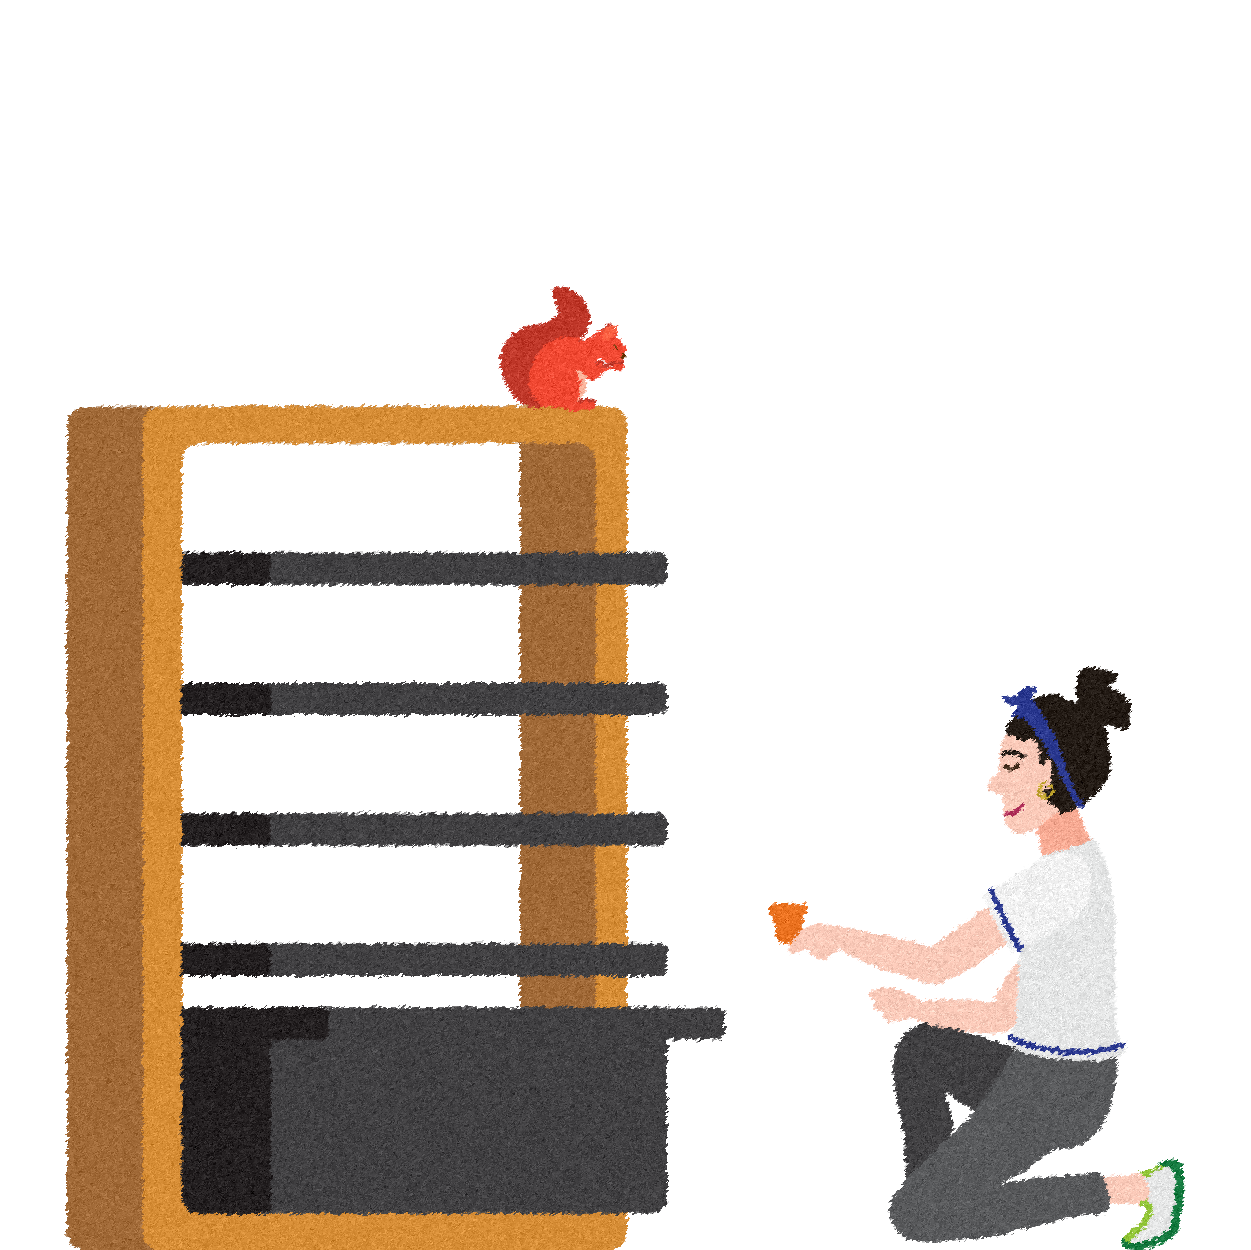 CorporateClientsPage_illustrations-01.png